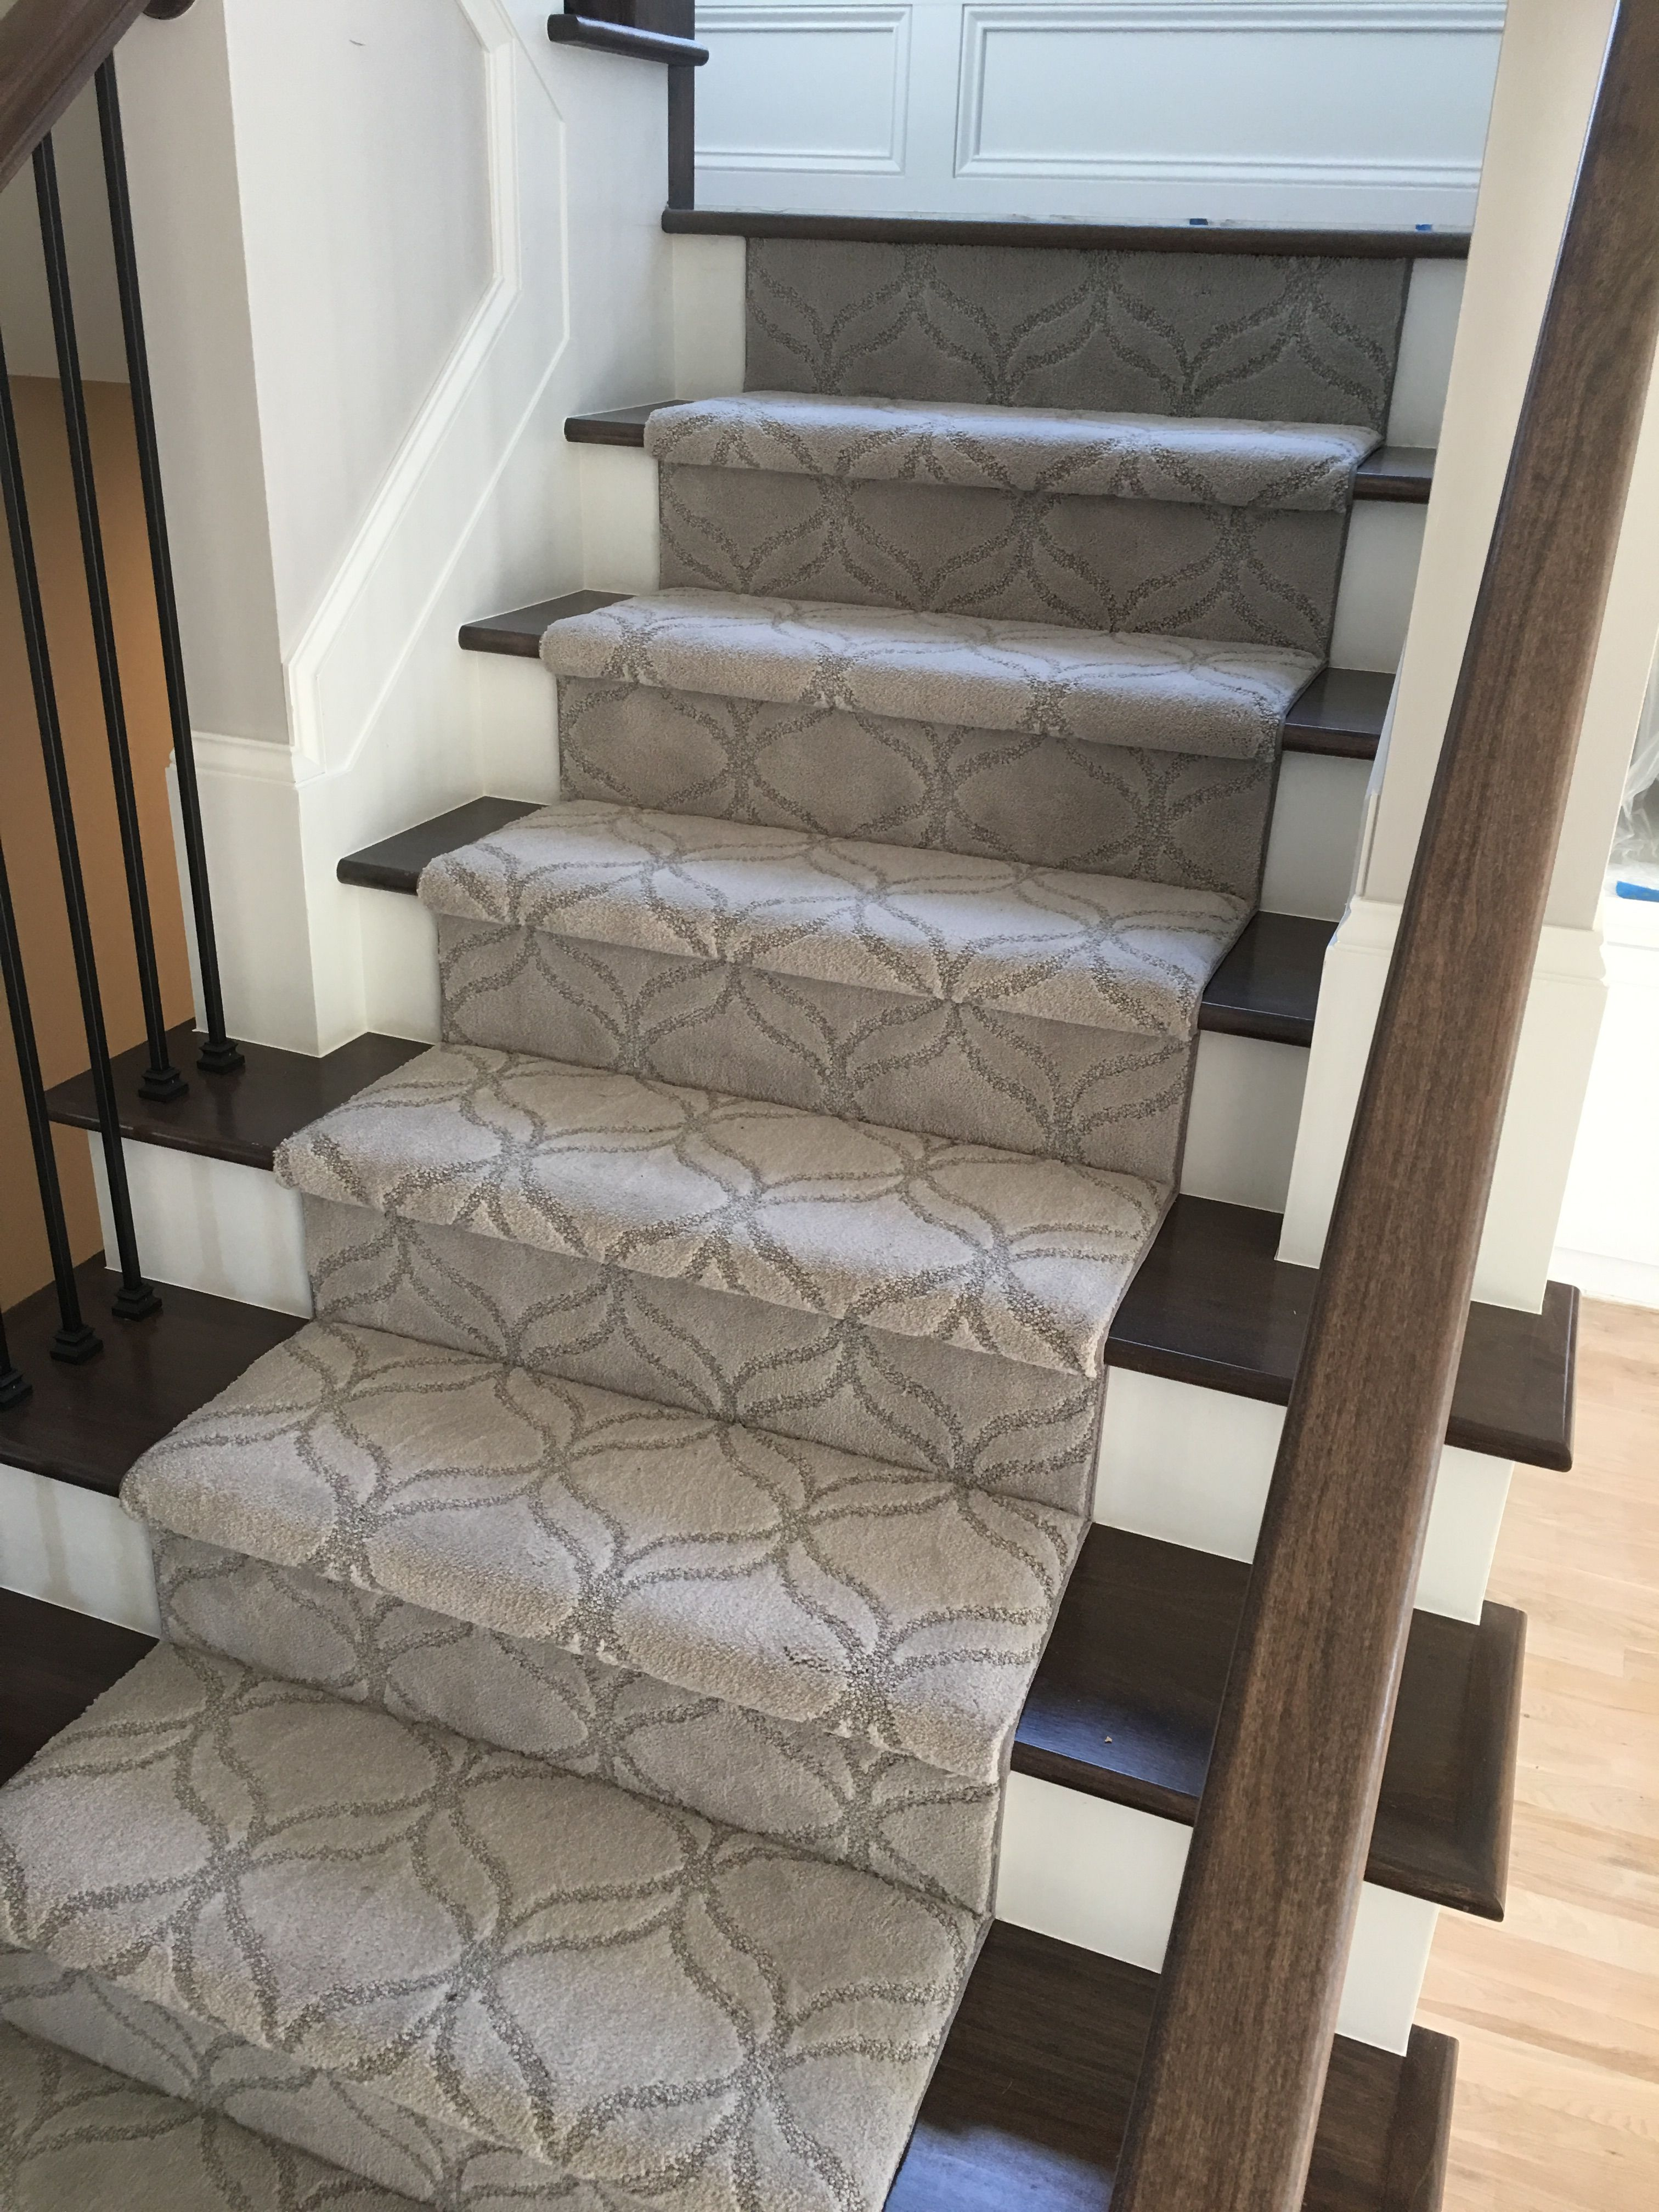 Appreciation Dundee By Shaw Stairs Stair Runner Patterned Carpet Hardwood Staircase Stair Runner Carpet Carpet Stairs Patterned Carpet